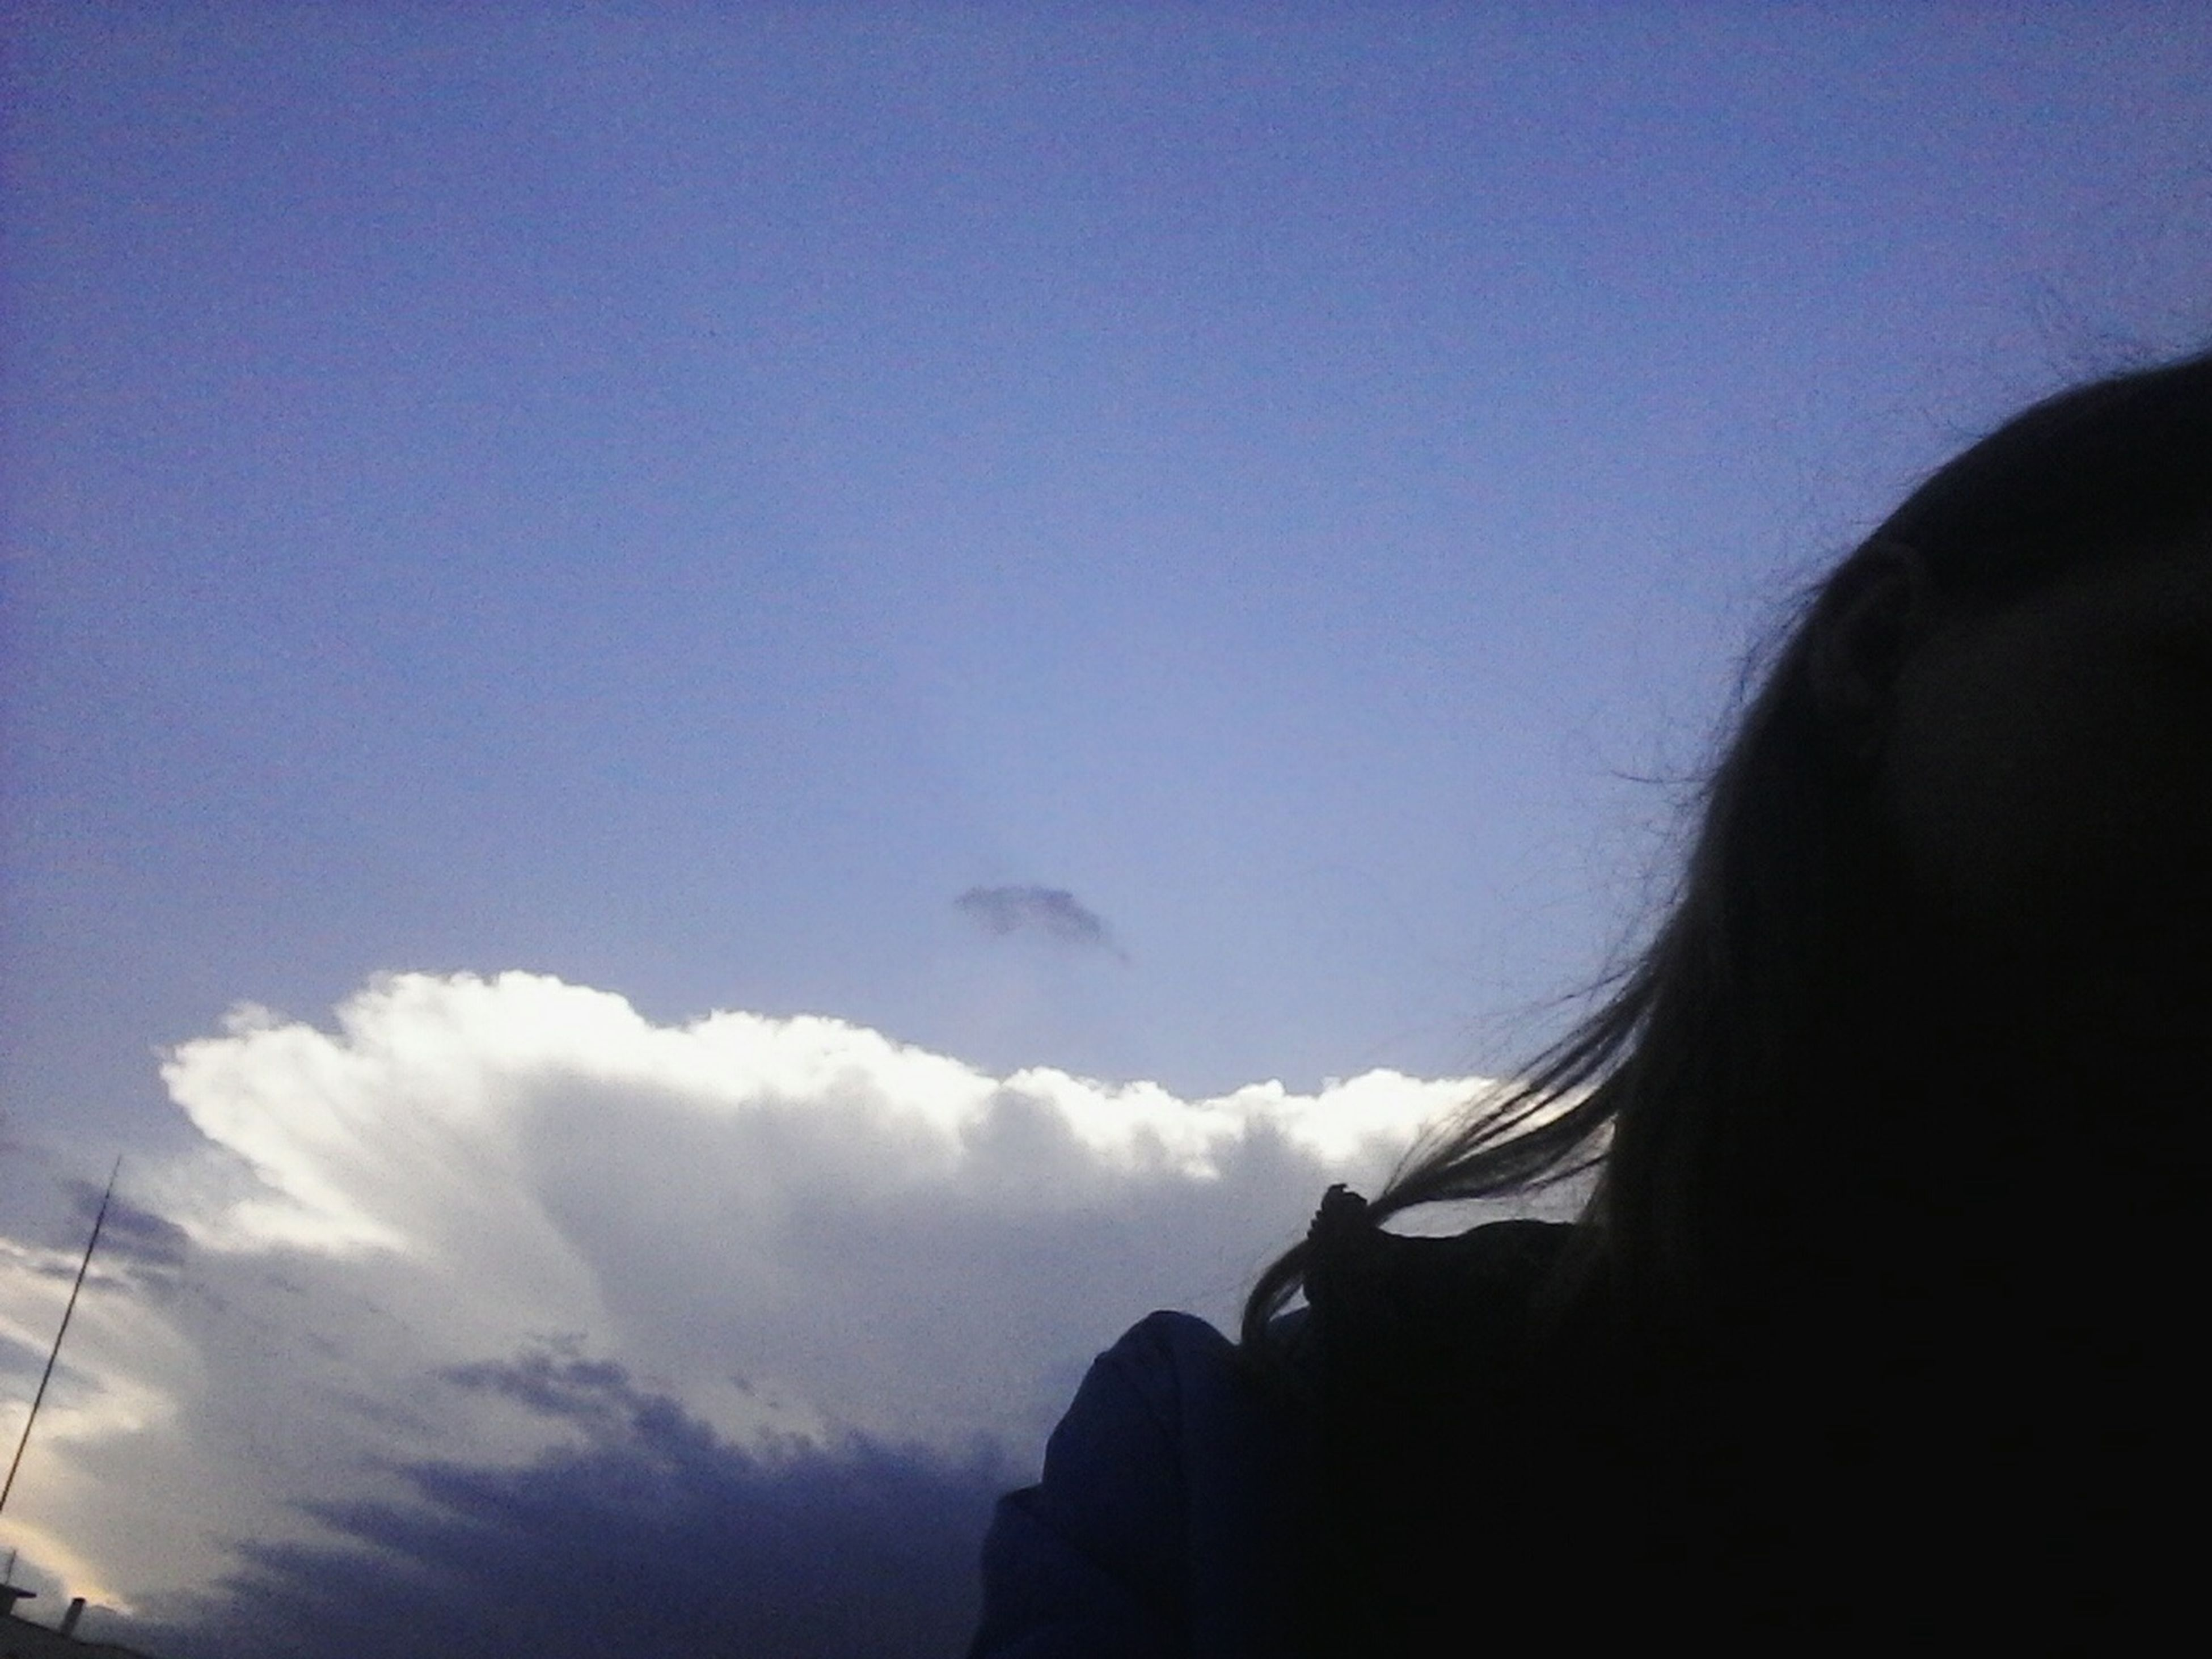 sky, blue, silhouette, copy space, beauty in nature, scenics, tranquil scene, nature, low angle view, tranquility, clear sky, cloud, cloud - sky, outdoors, mountain, day, idyllic, dusk